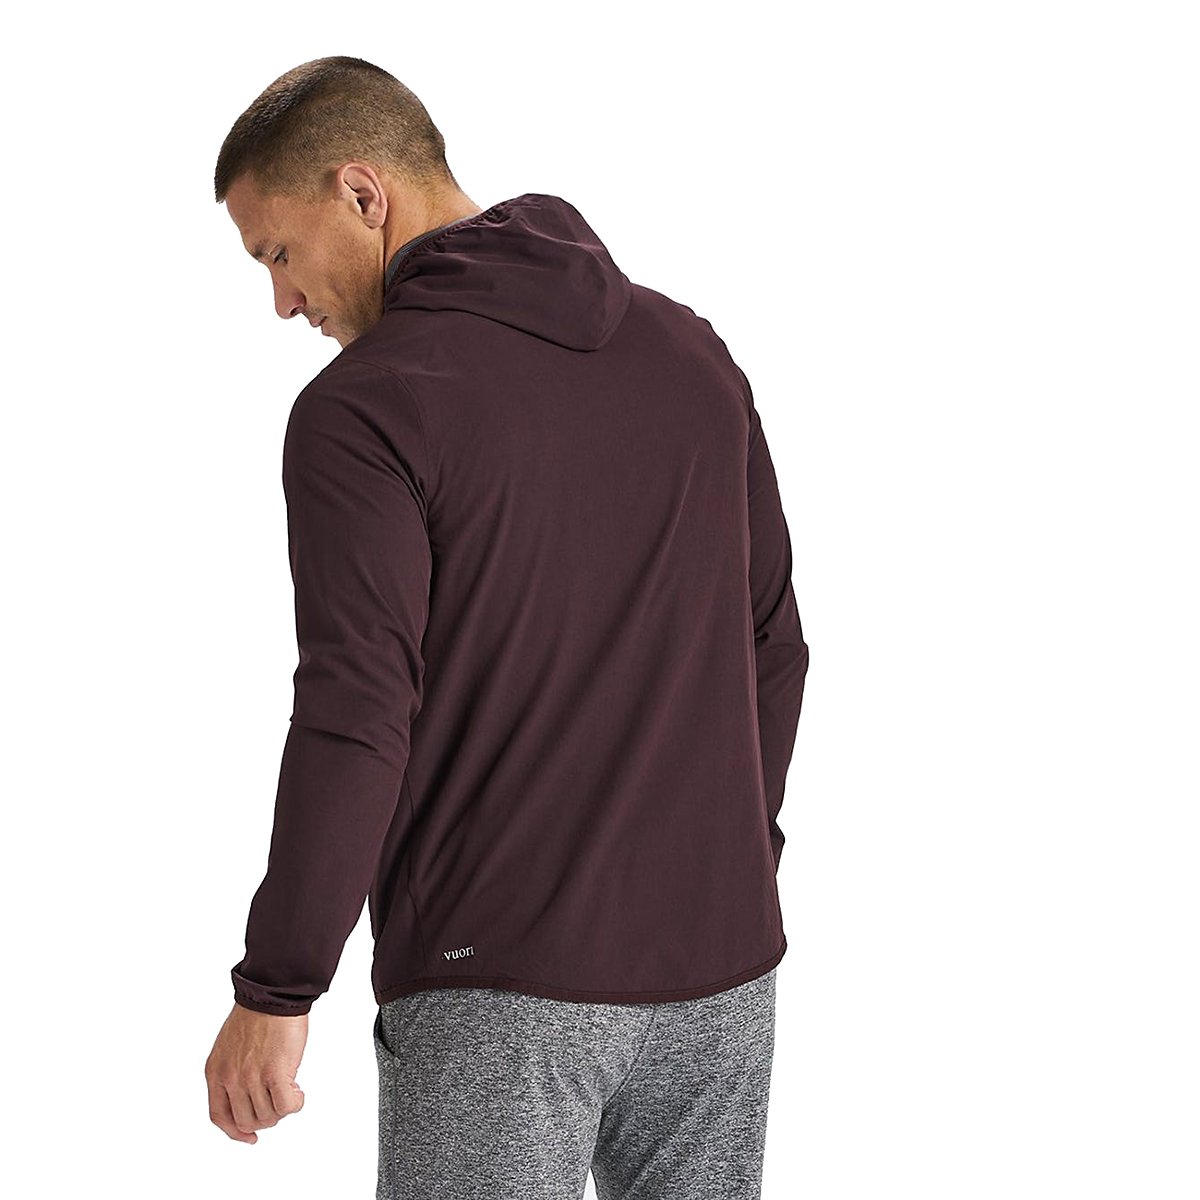 Men's Vuori Outdoor Trainer Shell  - Color: Oxblood Texture - Size: S - Width:, Oxblood Texture, large, image 2